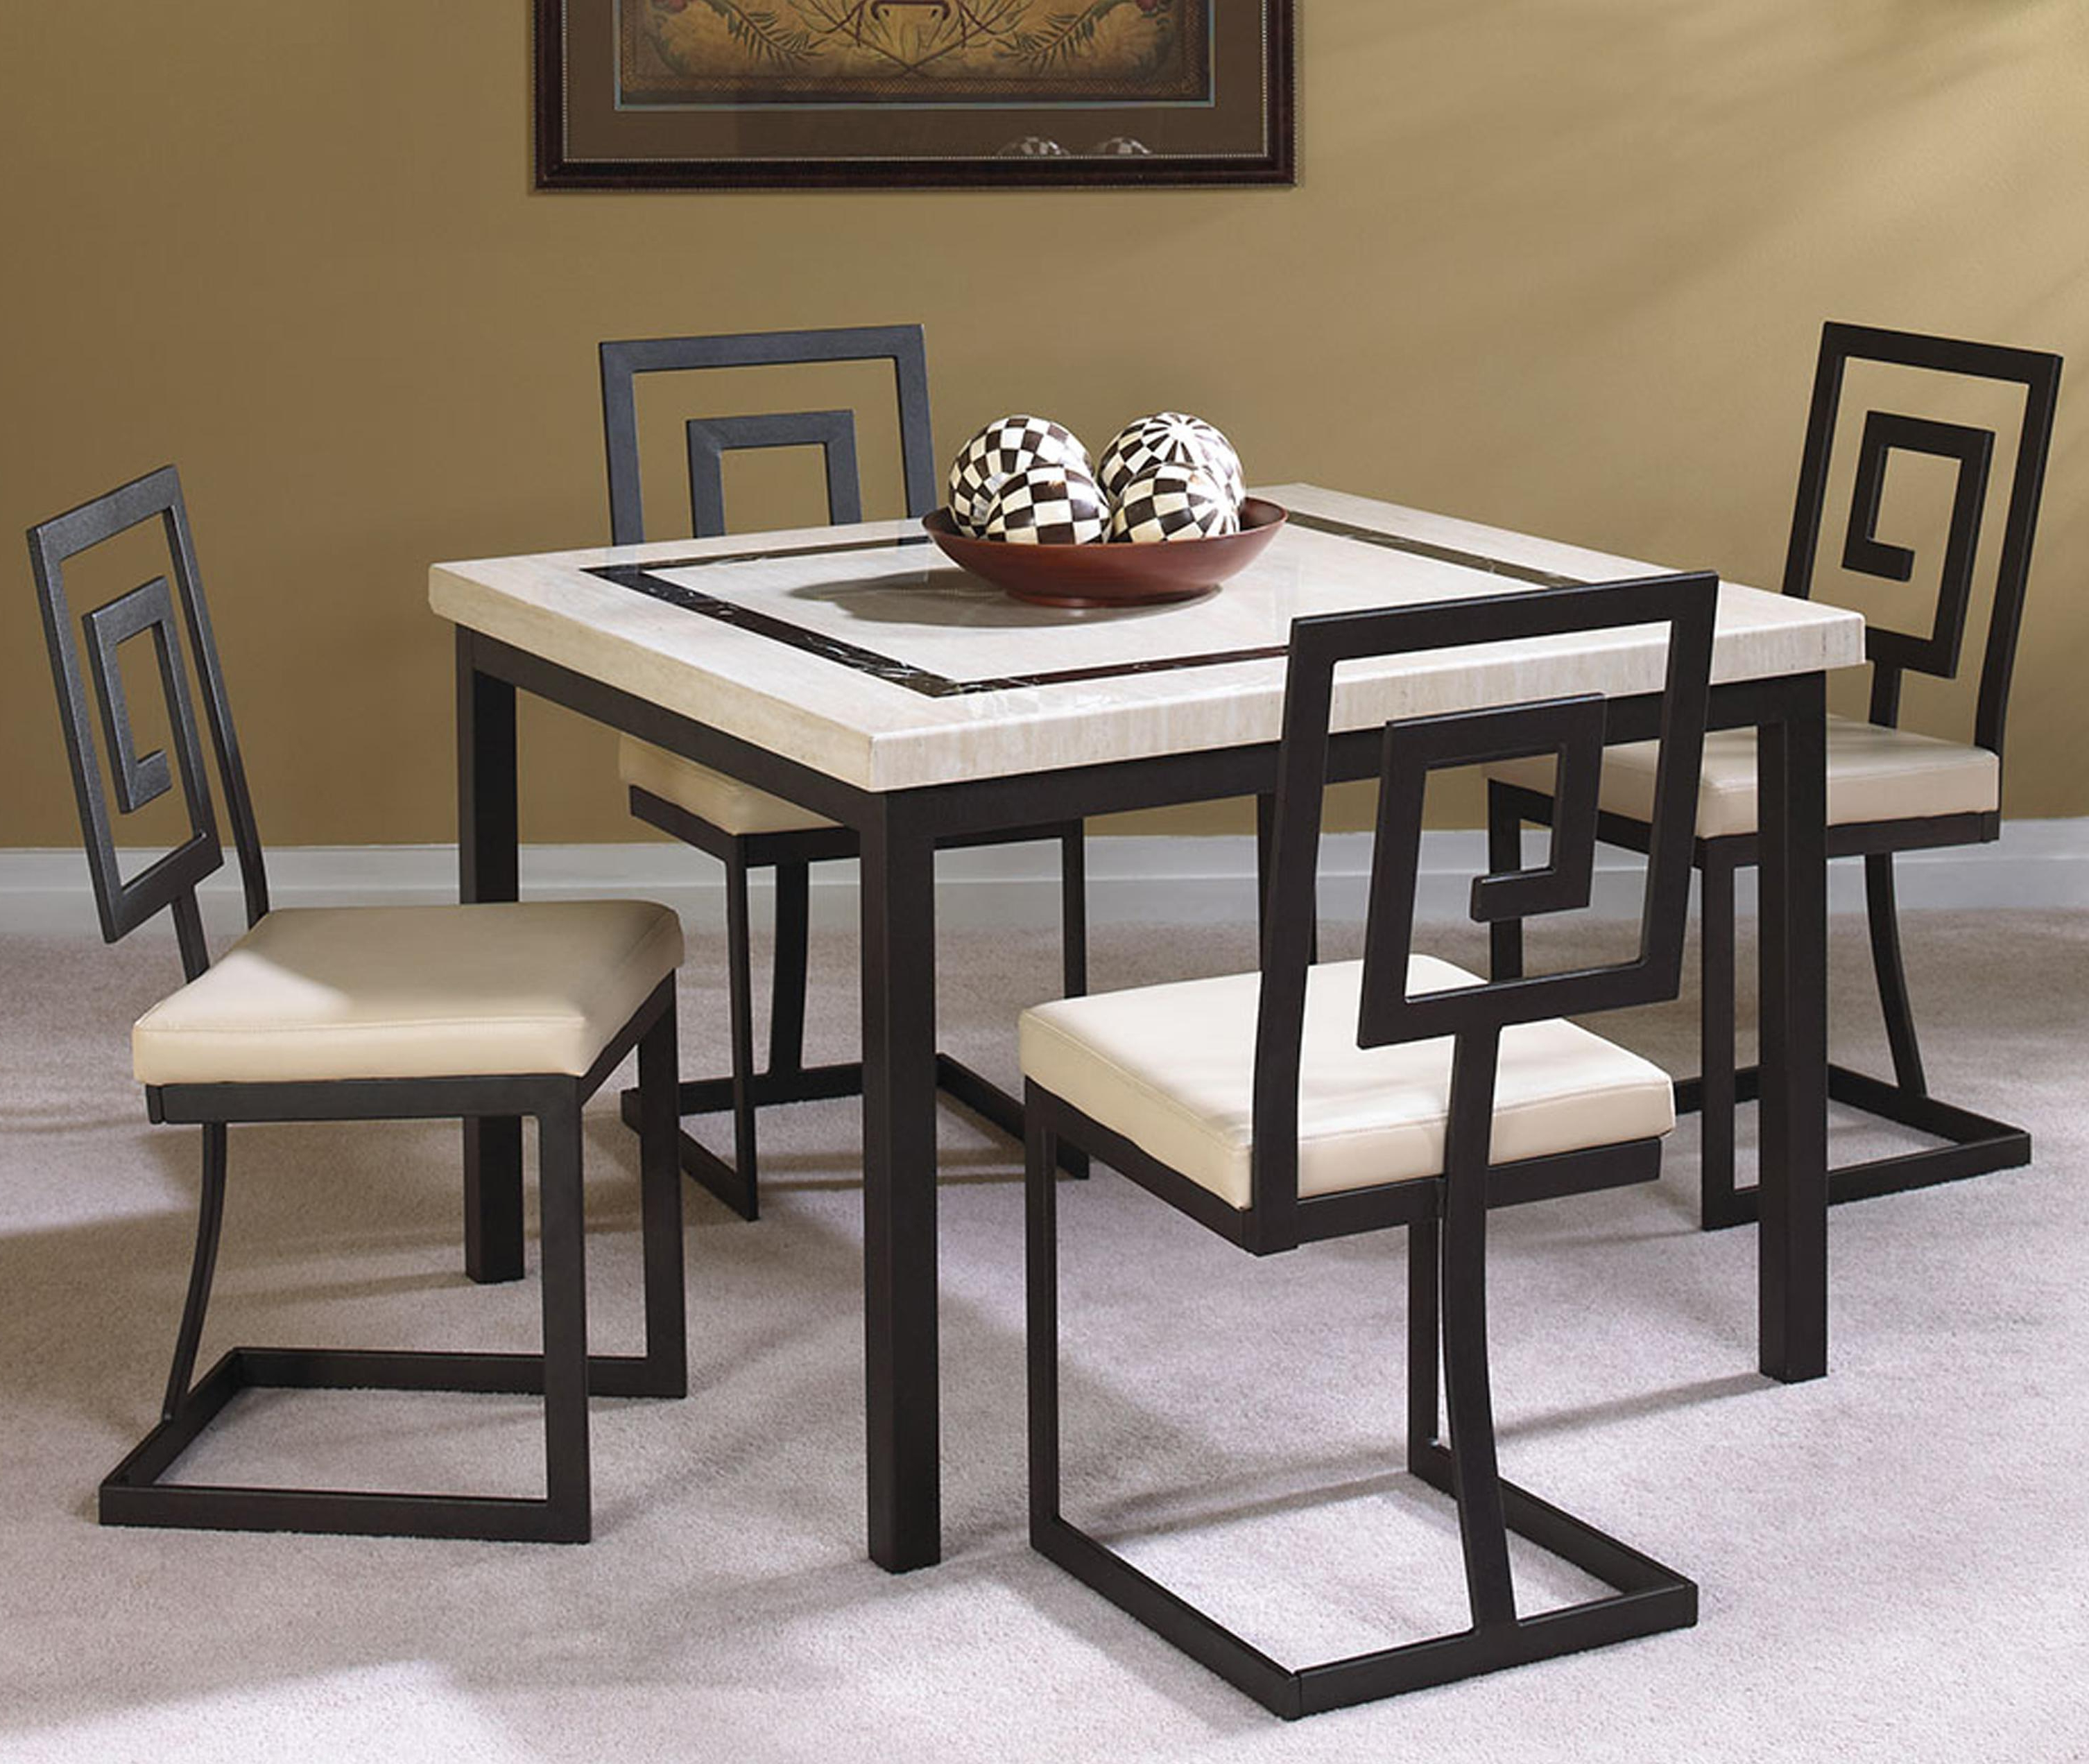 Value Within Best And Newest 5 Piece Dining Sets (View 3 of 25)